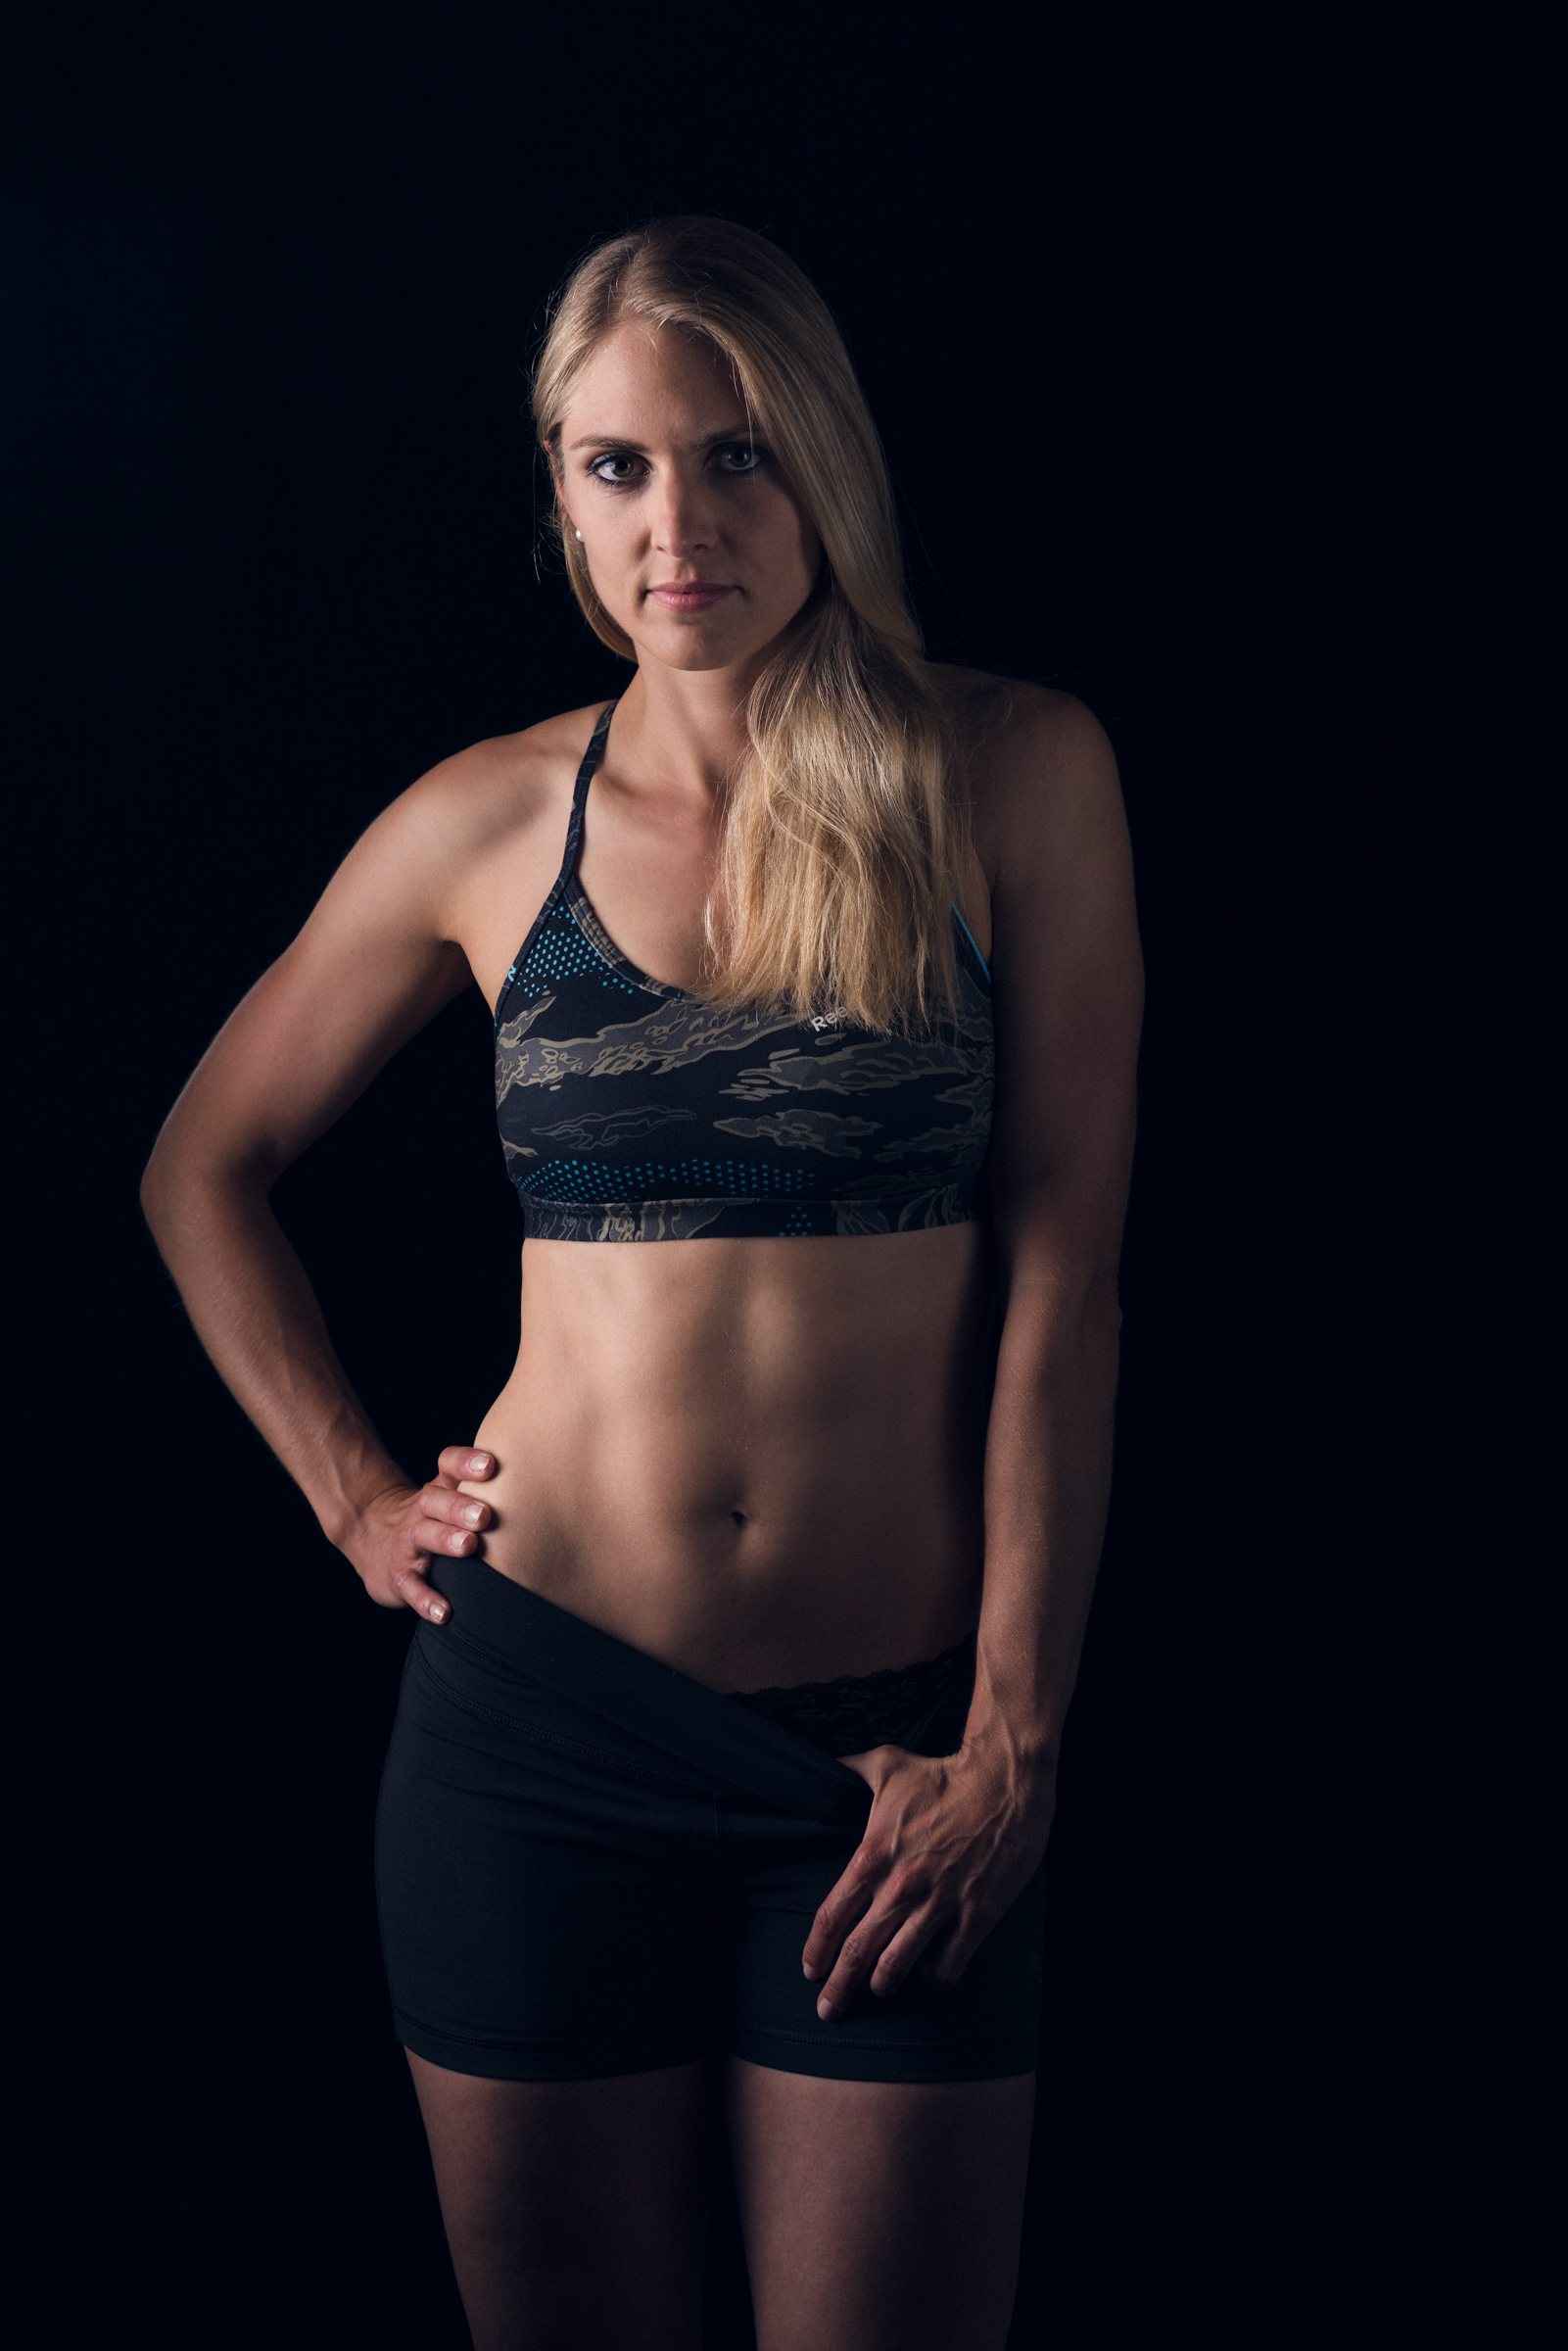 170709_Nadya-Sport-Shooting_A7R2-067-Edit.jpg